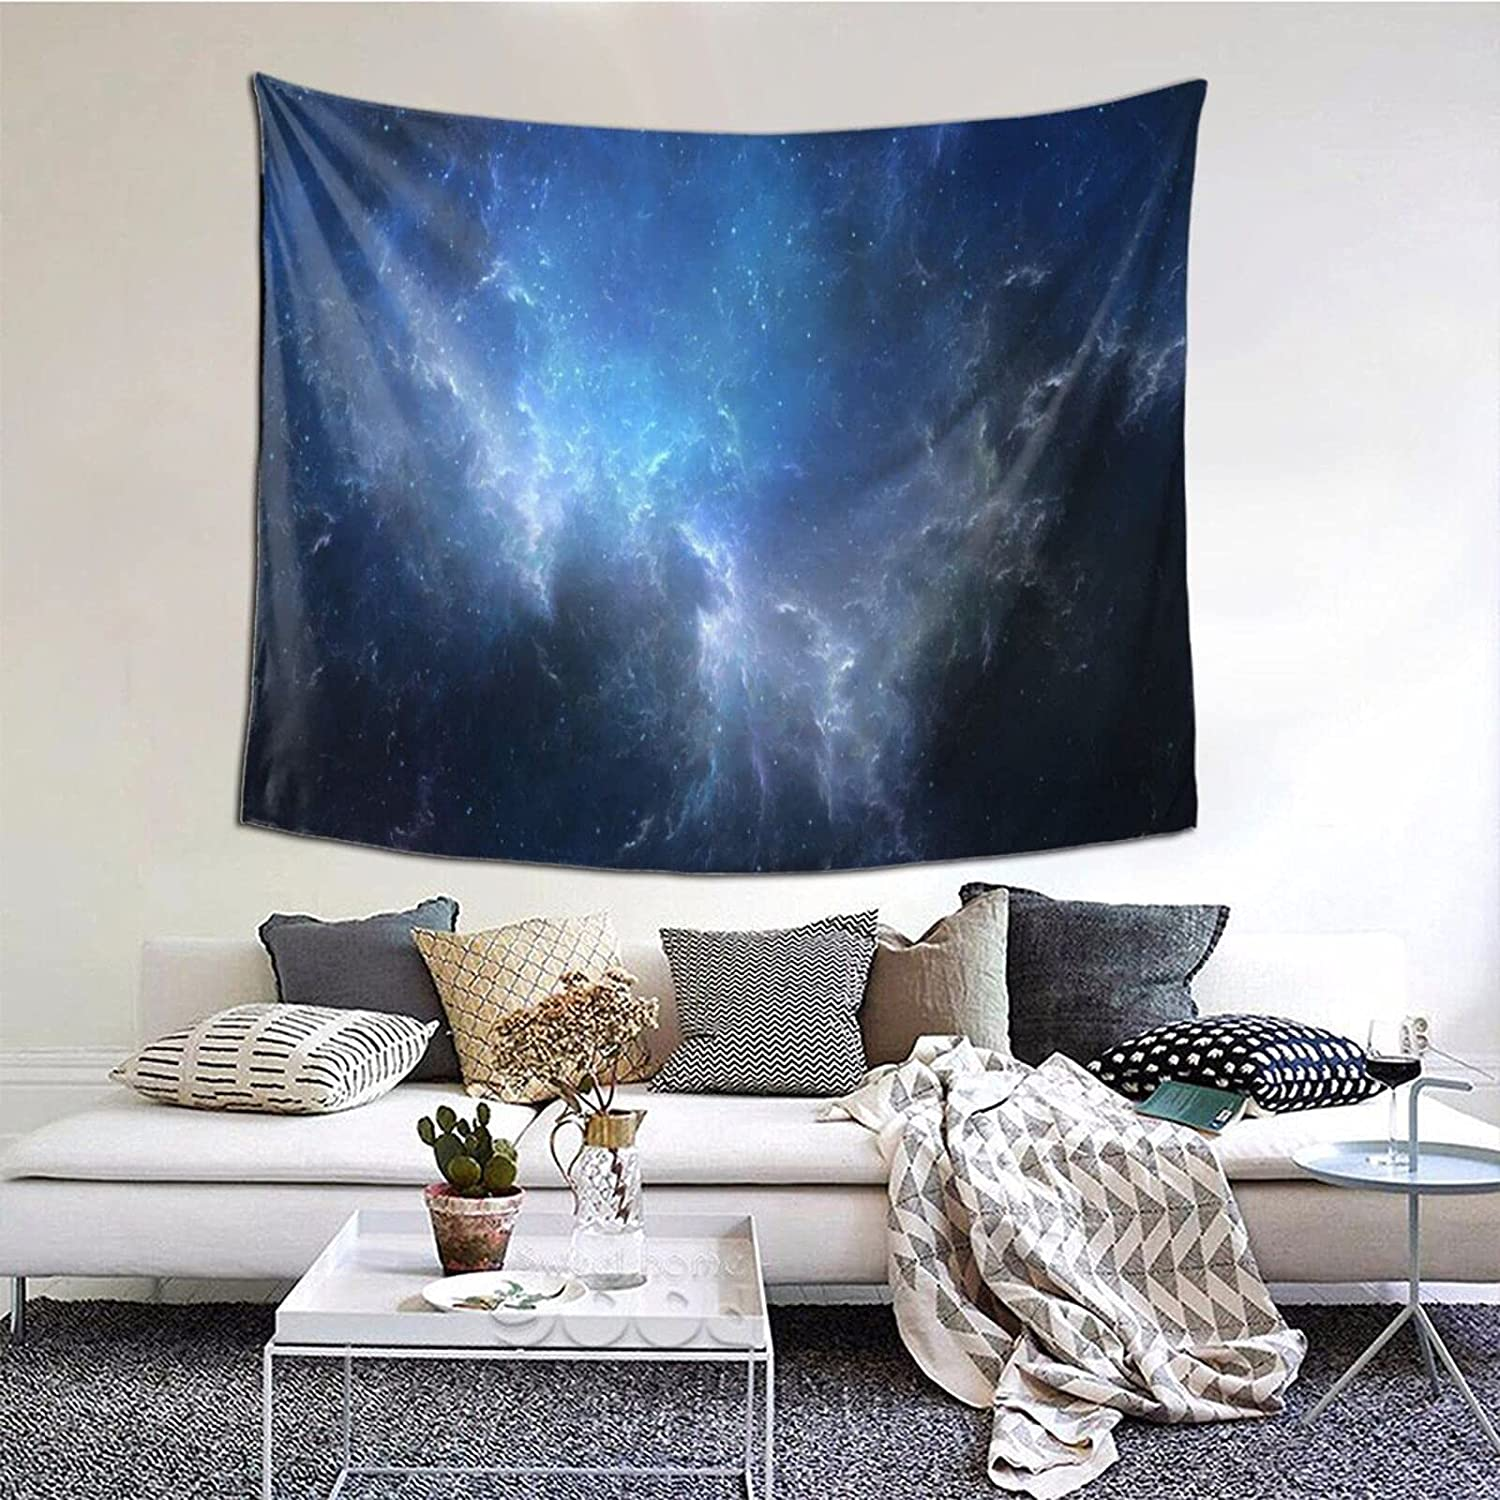 Space Collection Tapestry 60 51 Inch Colorful Hippie Fort Worth Mall Ta Translated Multiple